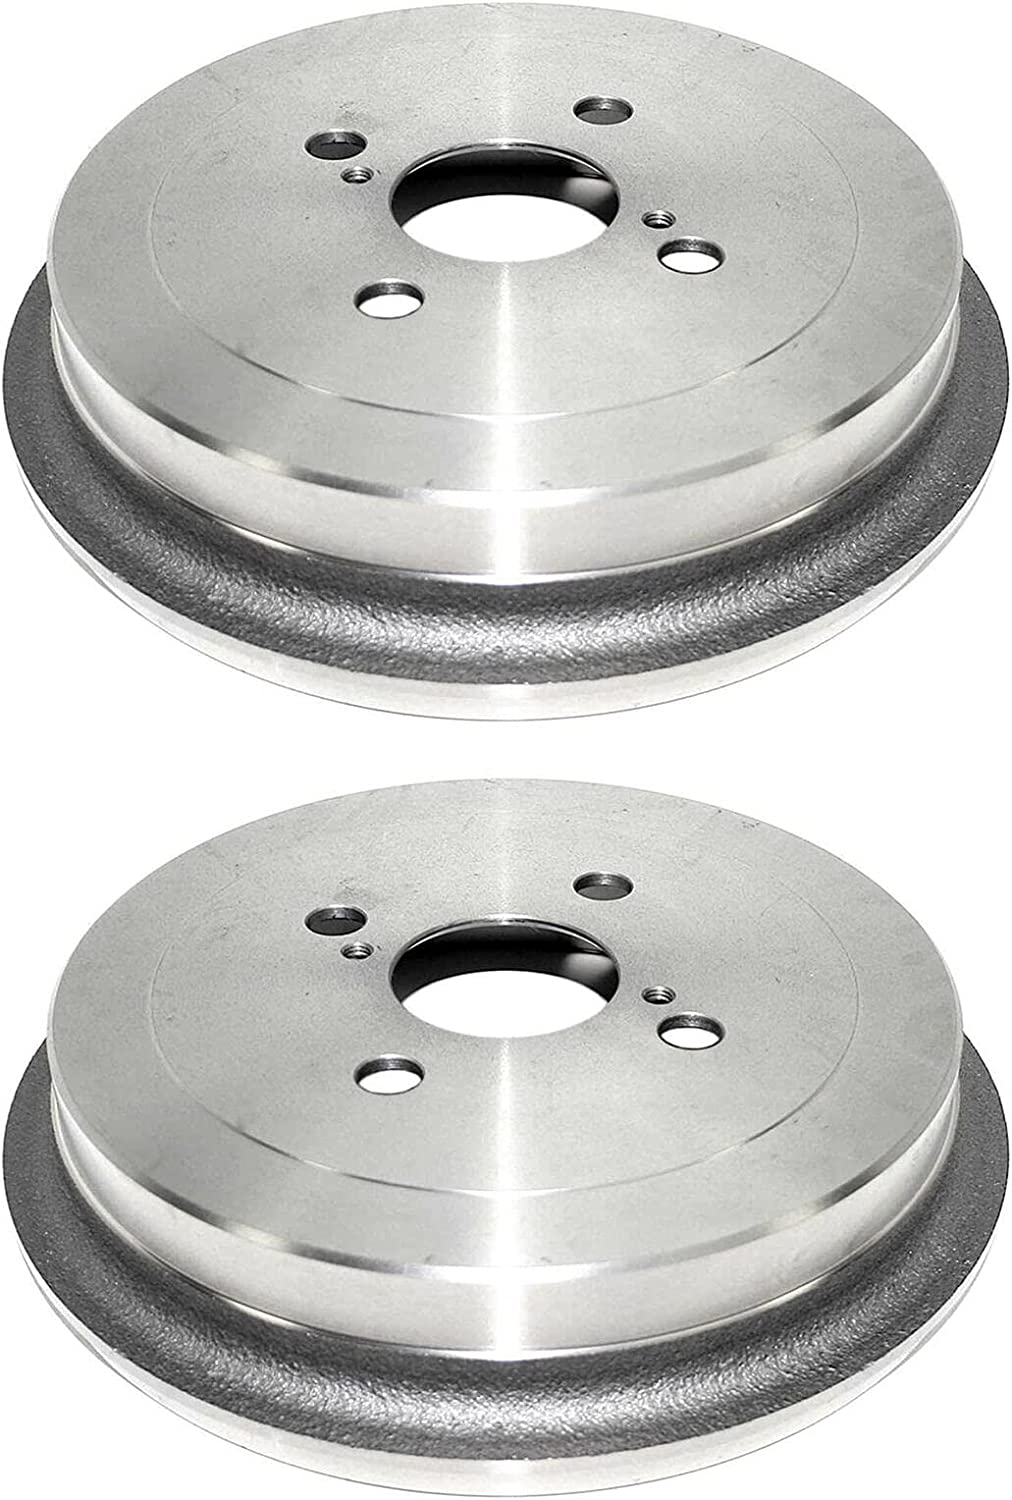 Durago Pair Set Of 2 Rear with Toyota Yar 5 popular Tucson Mall Compatible Brake Drums